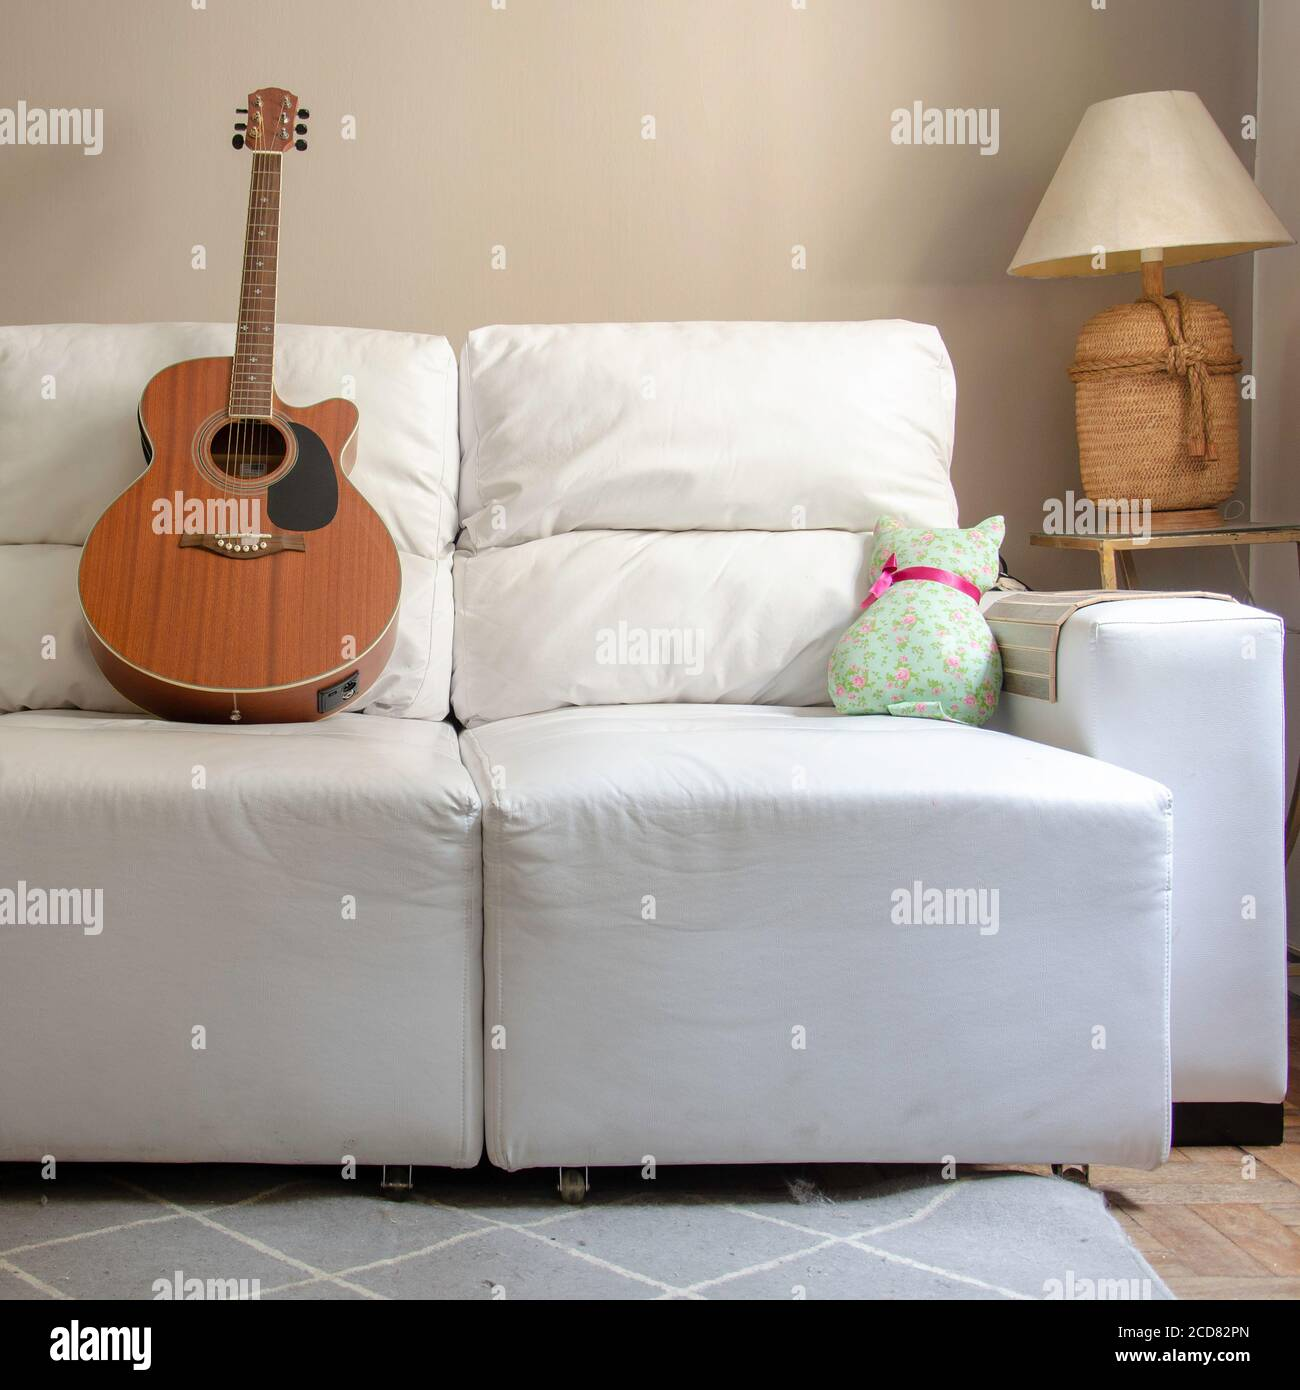 Home decor: living room with wooden guitar over a white sofa and lamp on side table with light brown background wall Stock Photo